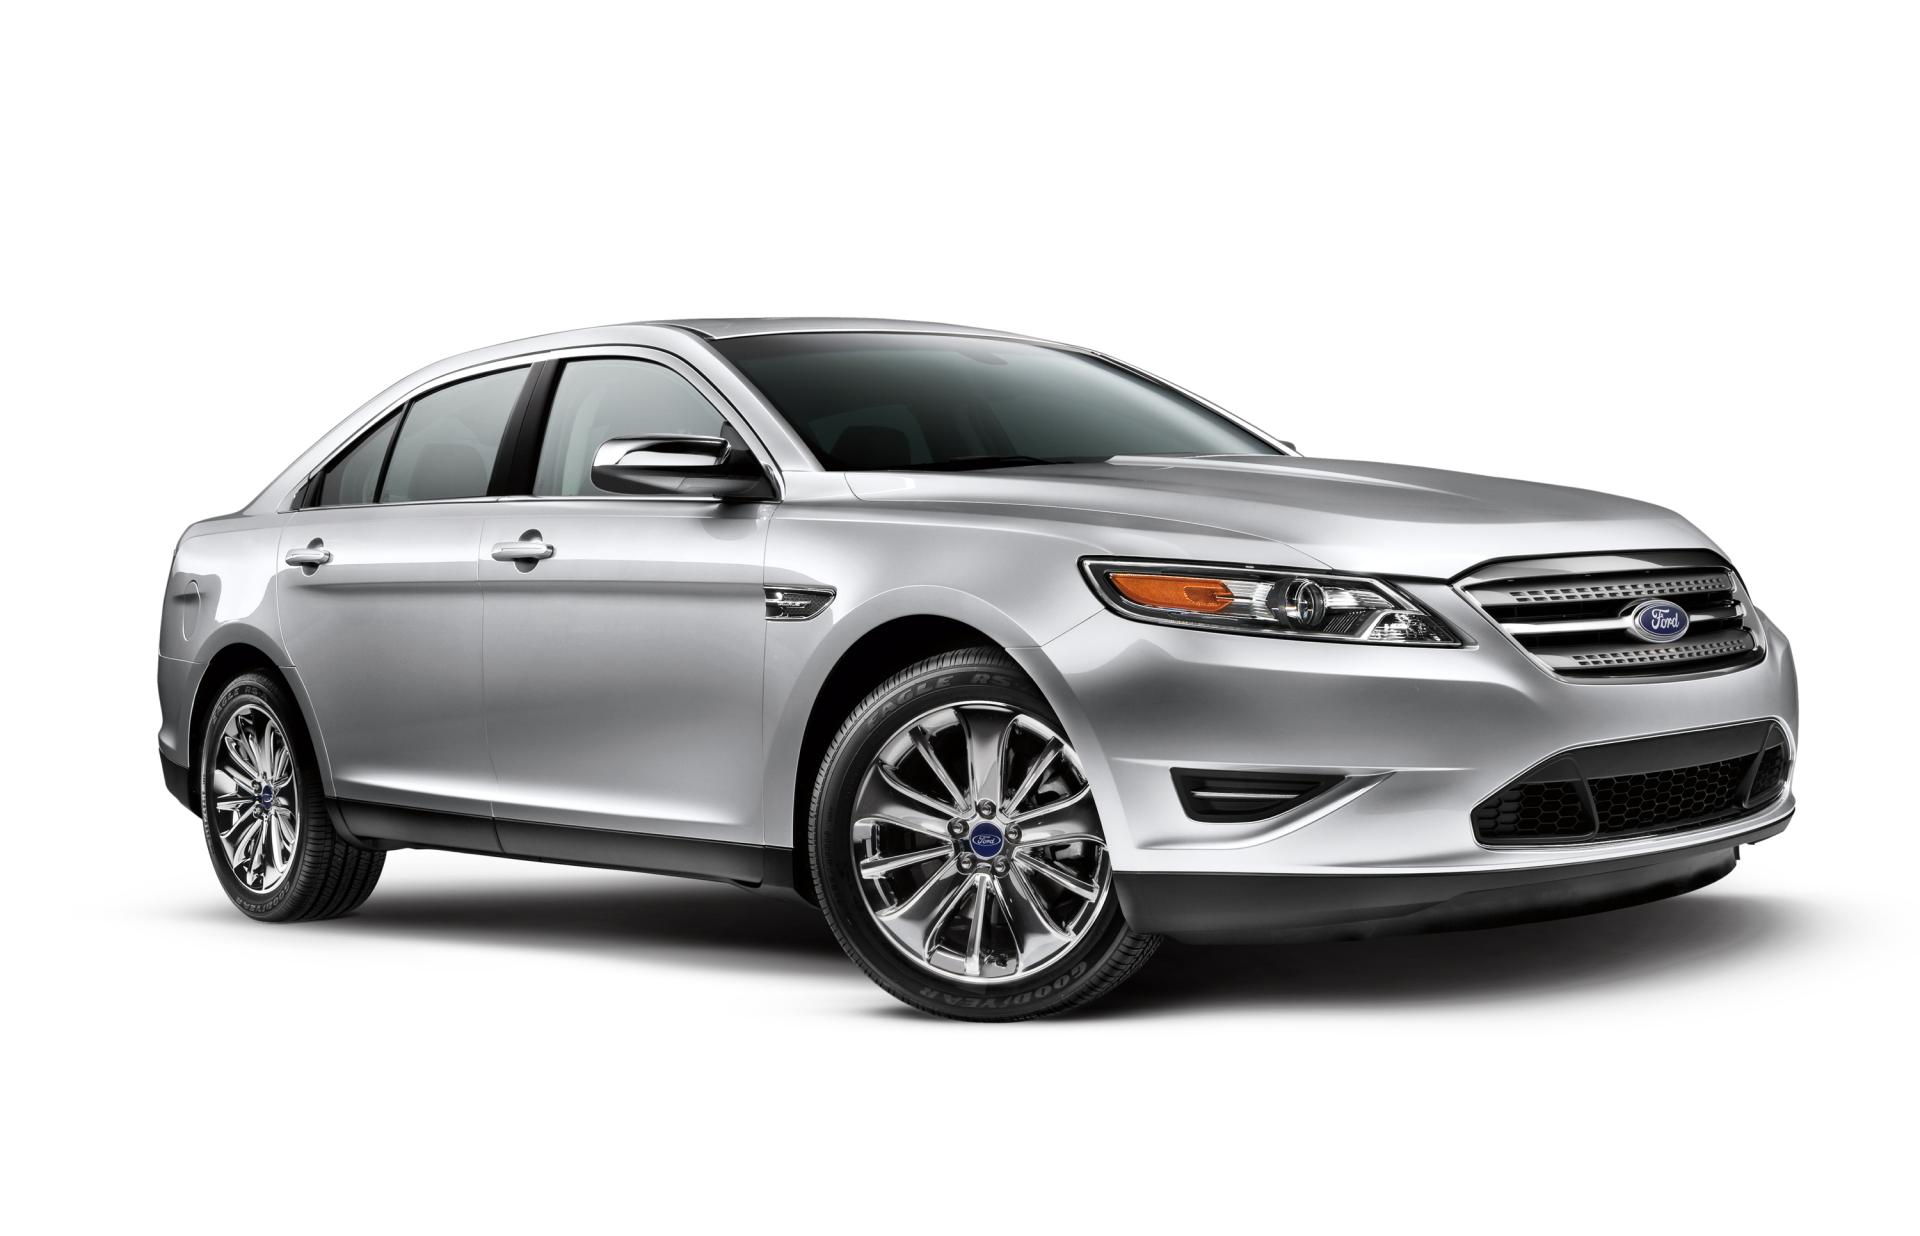 2012 Ford Taurus News and Information | conceptcarz.com